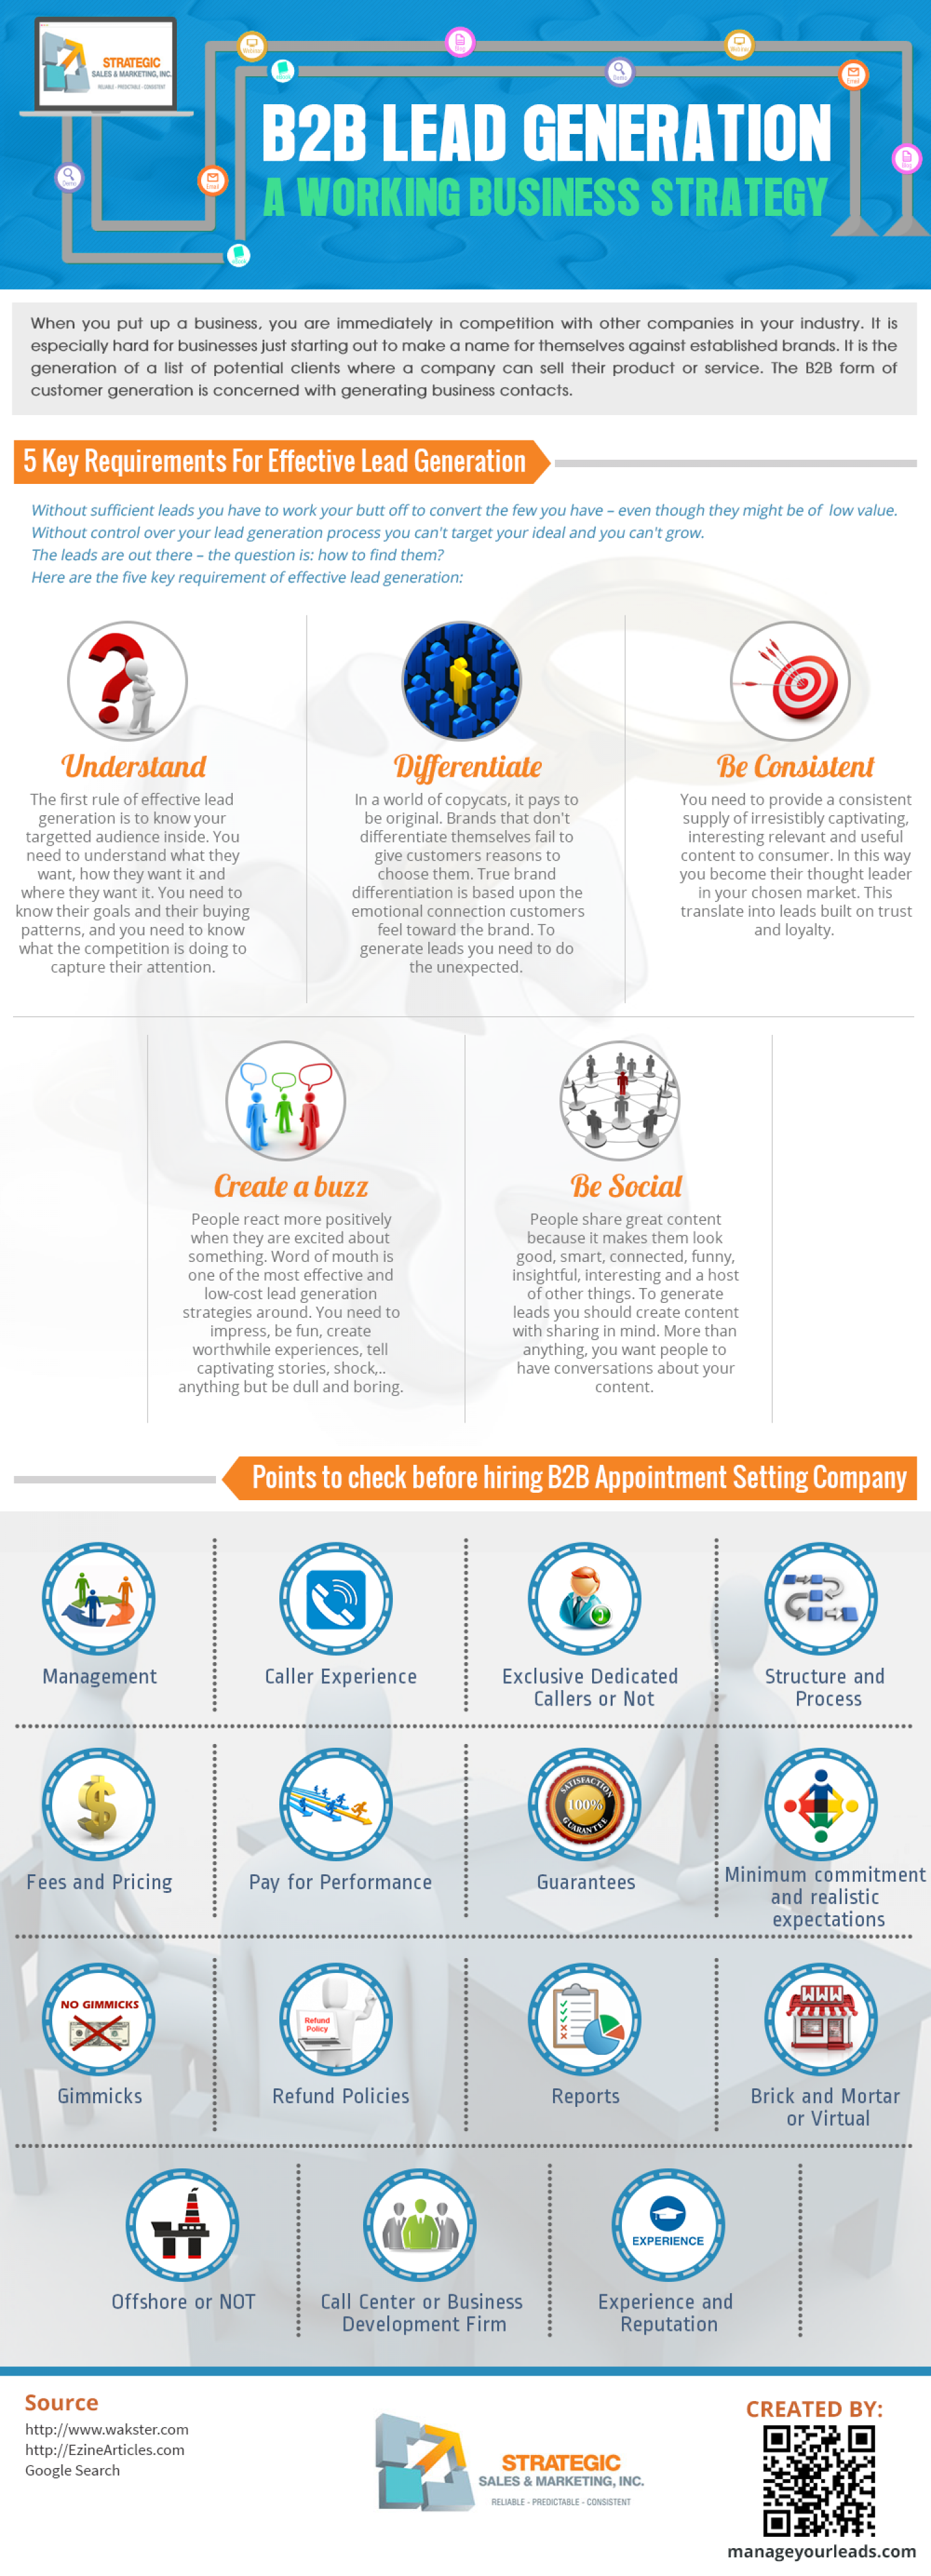 B2B Lead Generation - A Working Business Strategy Infographic